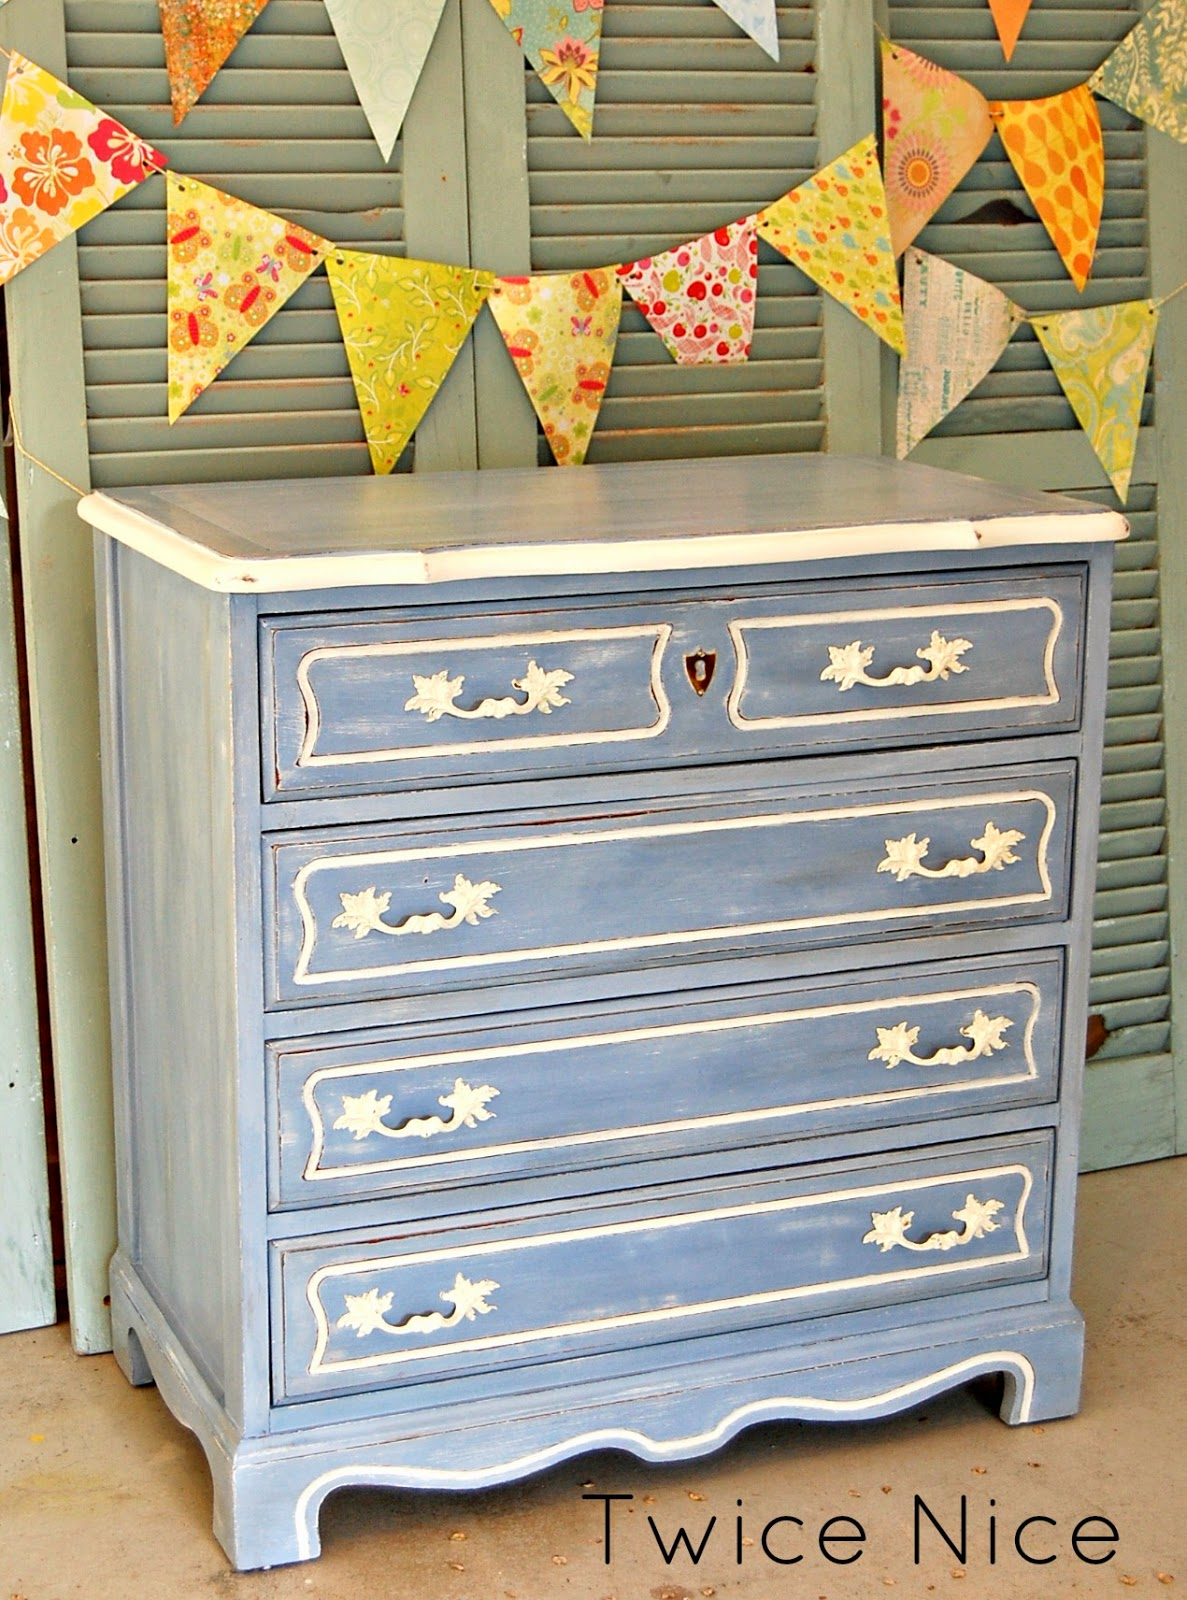 This Is Actually A Custom Mix Of American Paint Companyu0027s U0027Blue Jeansu0027. I  Based This Cute Little Dresser In APCu0027s Navajo White, Then Mixed More Of  The White ...